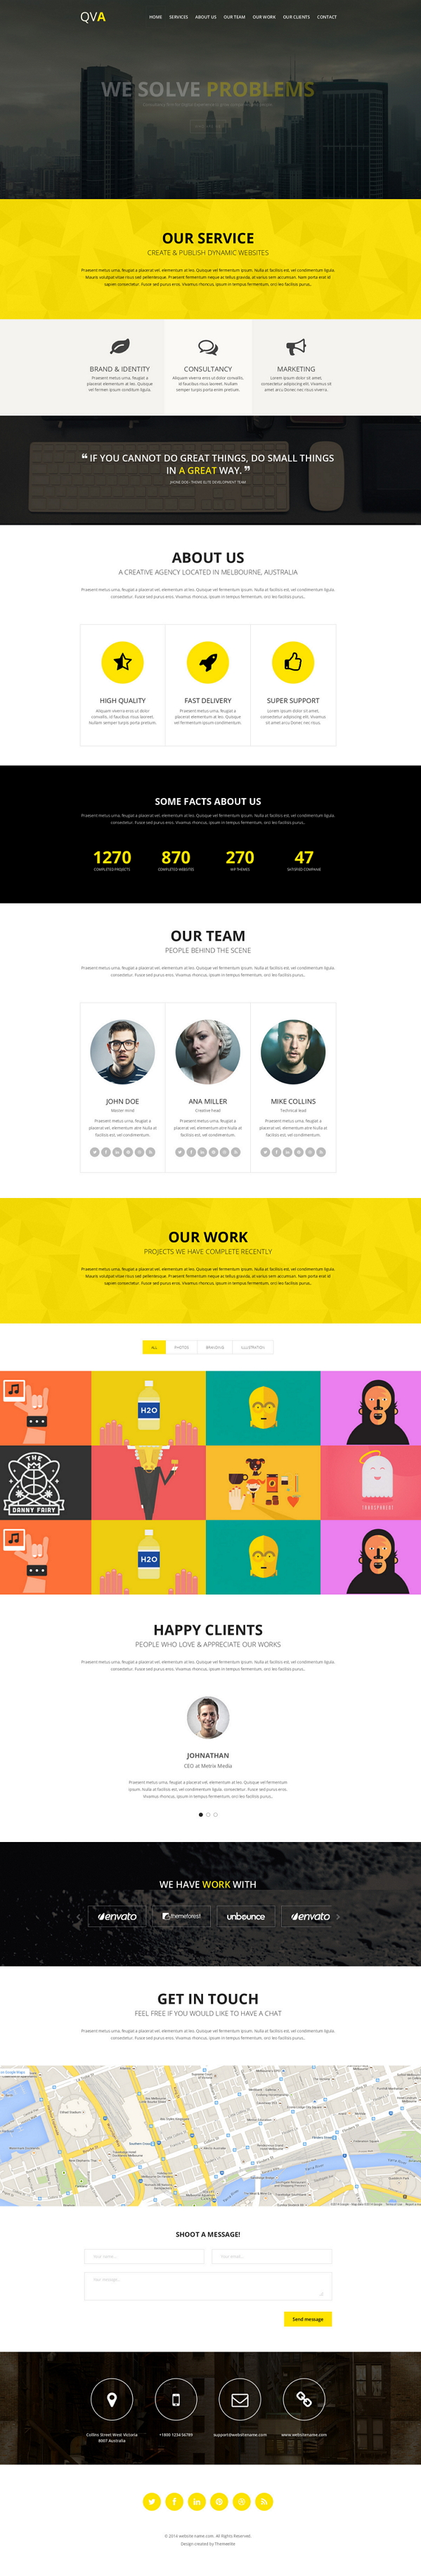 QVA is an responsive One Page Parallax WordPress Template built with HTML5 & CSS3.It has  ...